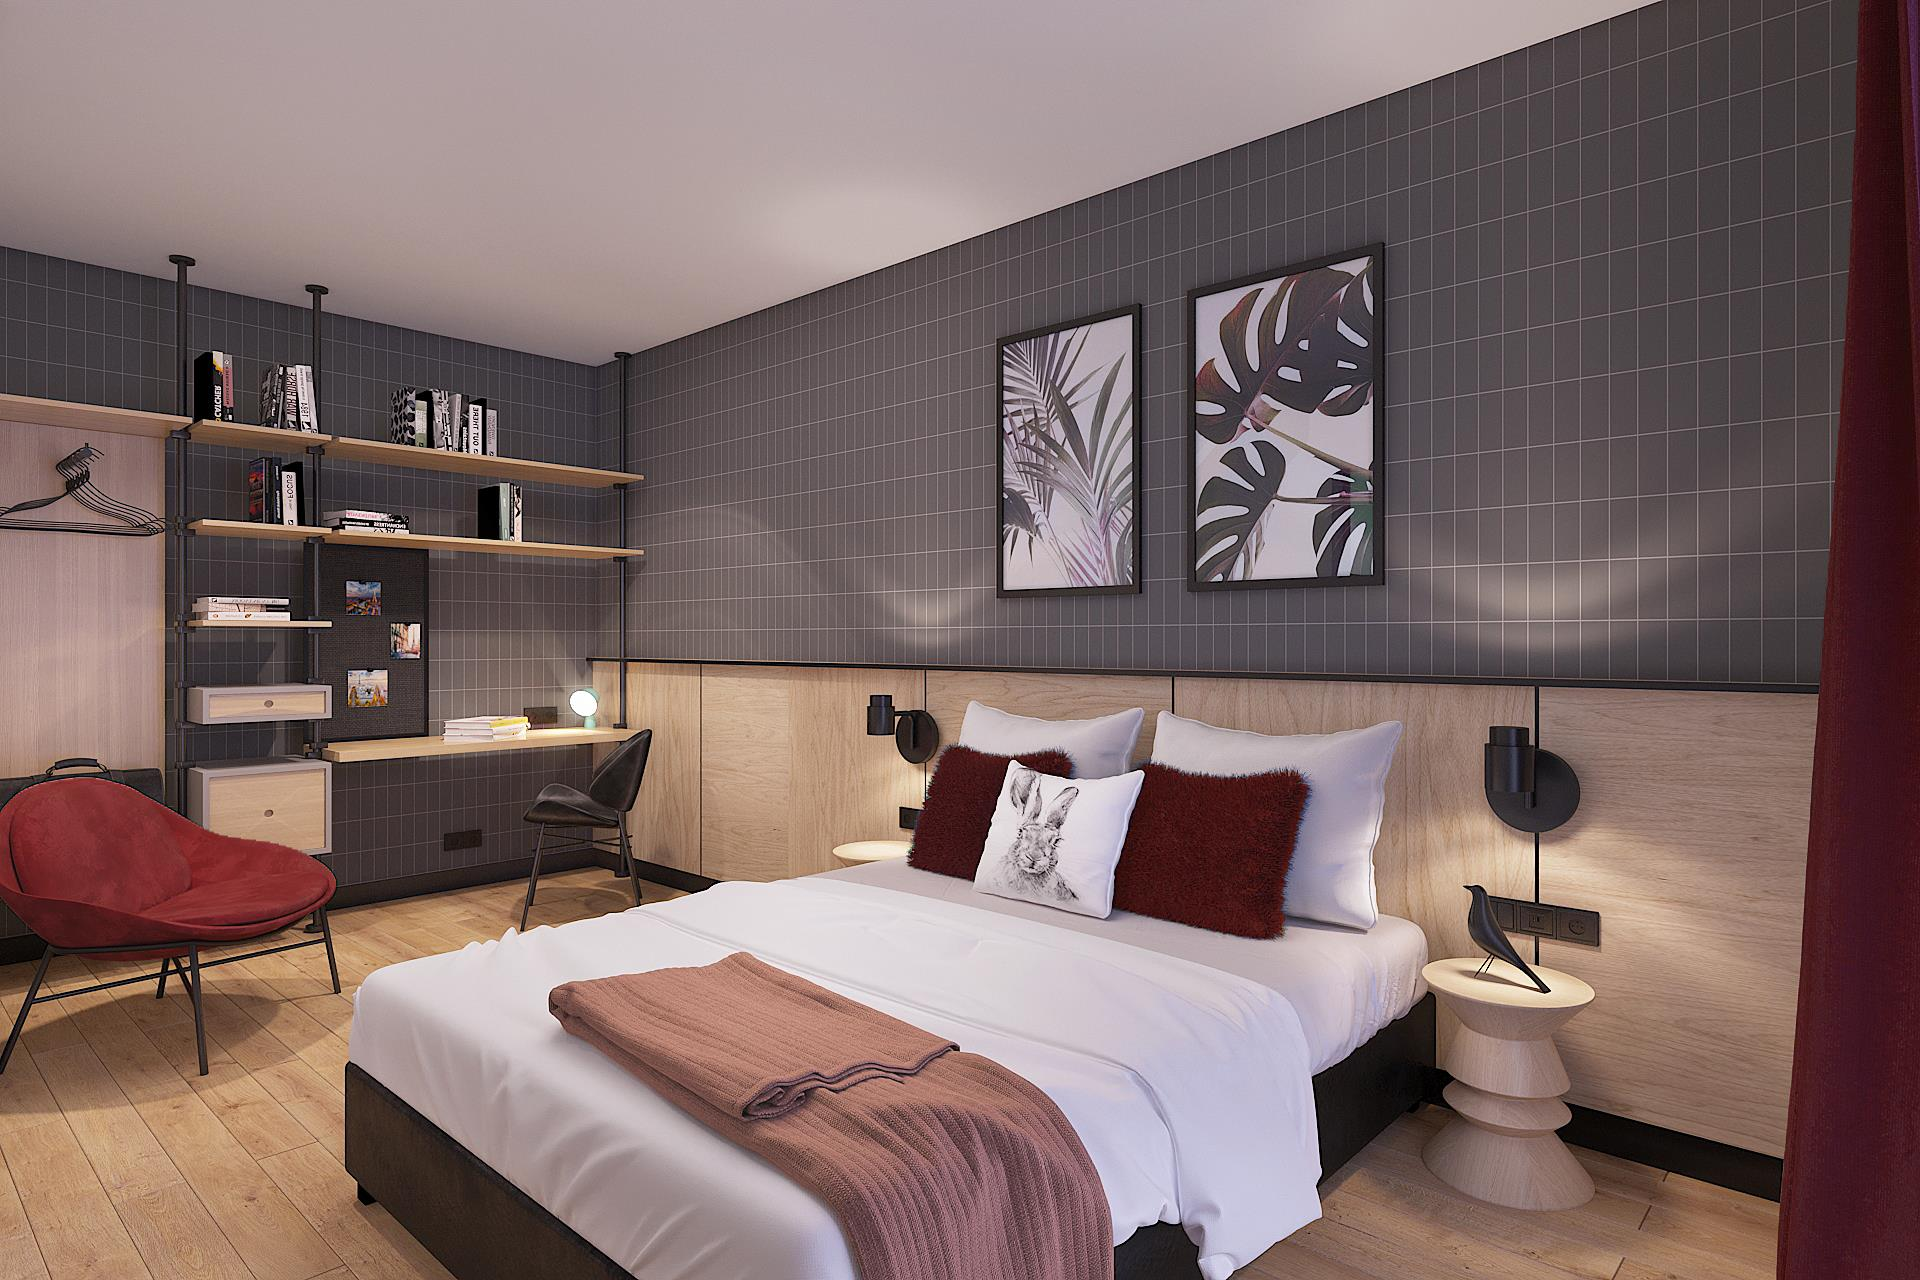 283/Chambres/tulip-residences-chambre-studio-double-room.jpg